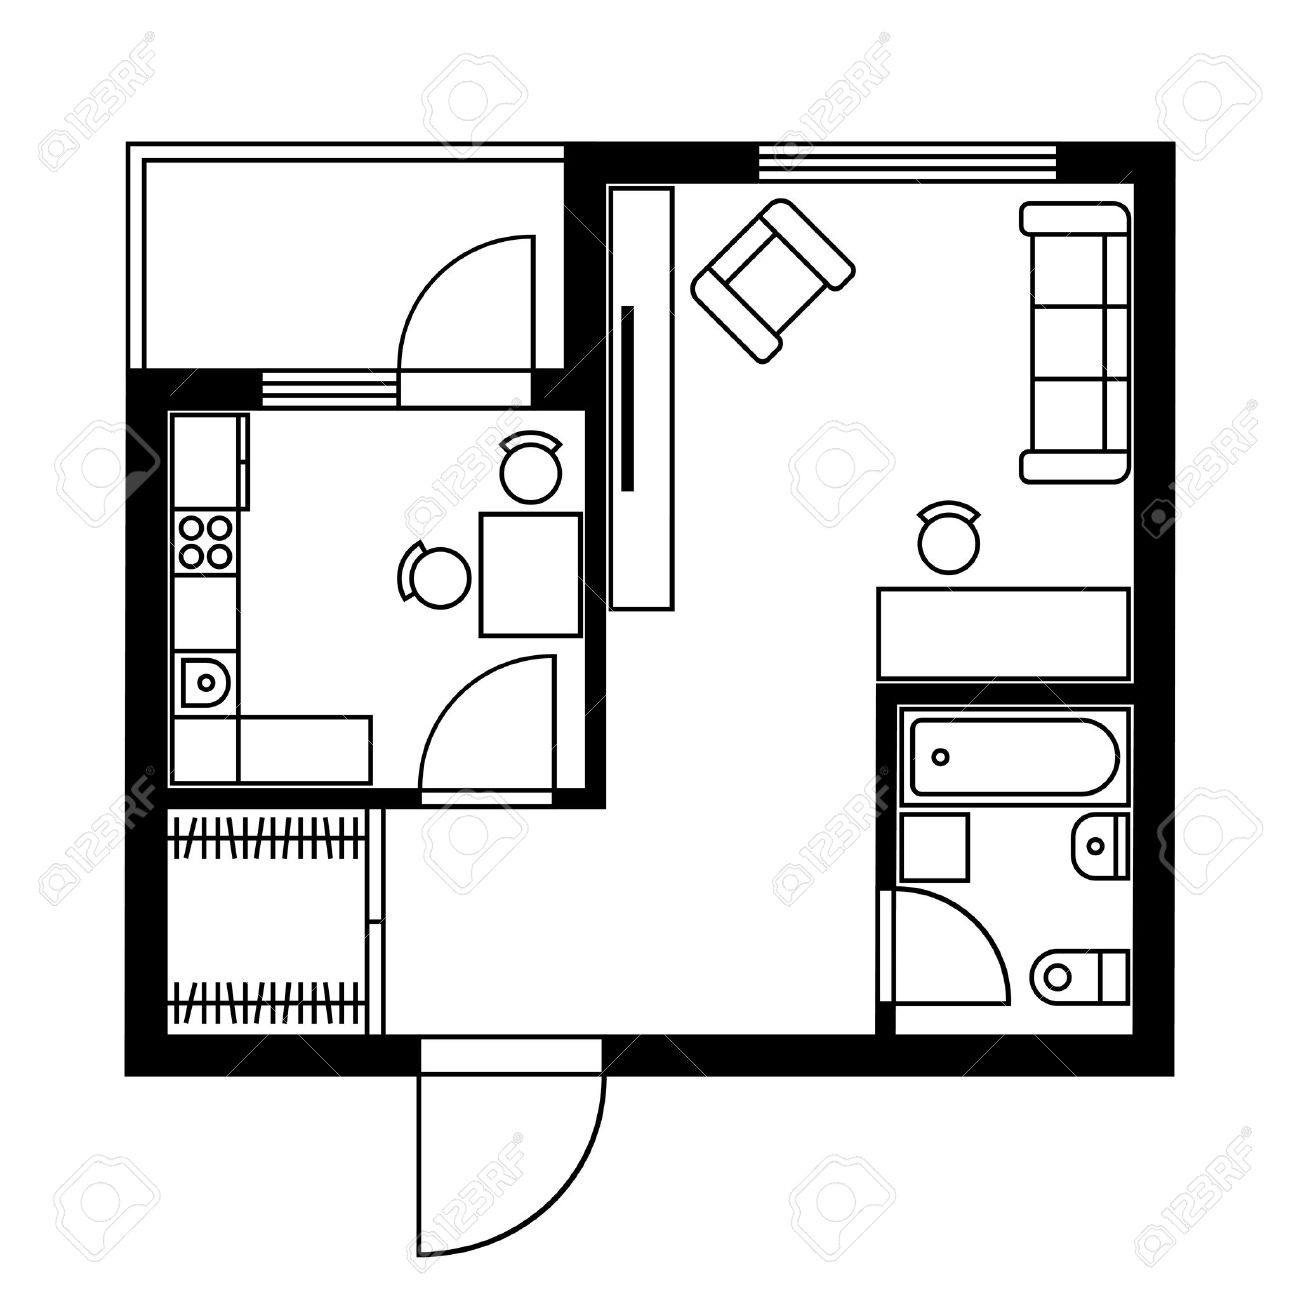 Floor Plan Of A House With Furniture. Vector Illustration Royalty ...